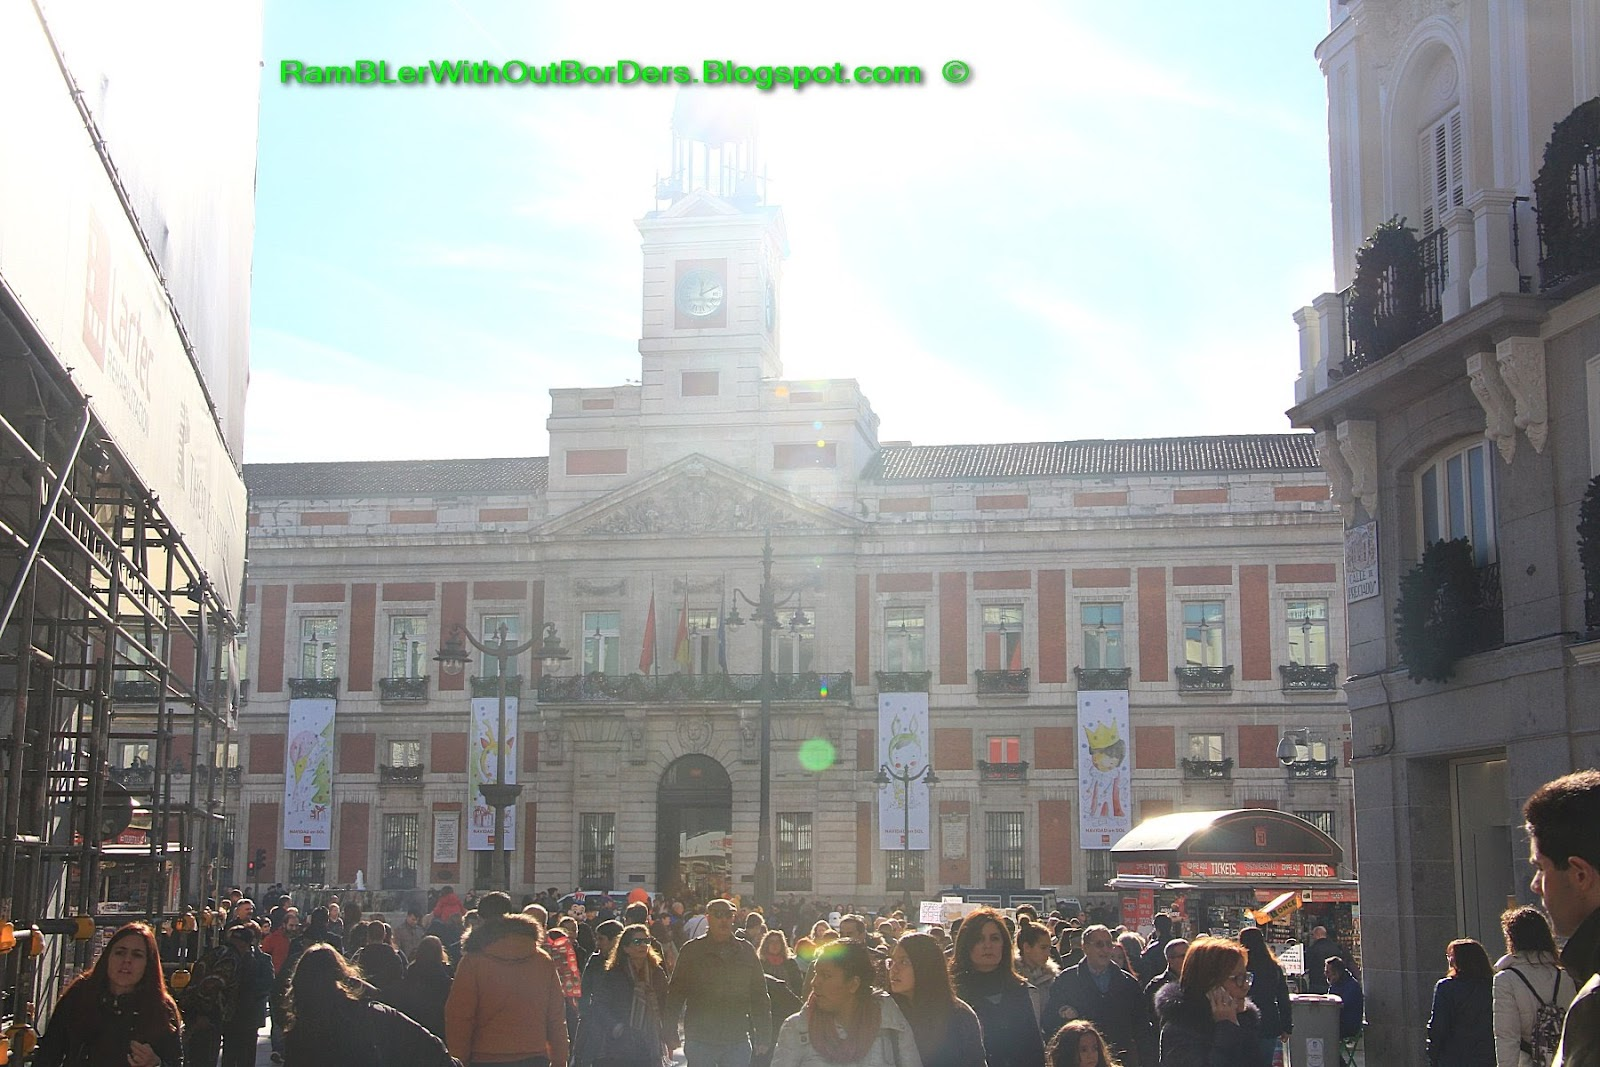 Rambler without borders puerta del sol sun gate madrid for Puerta del so